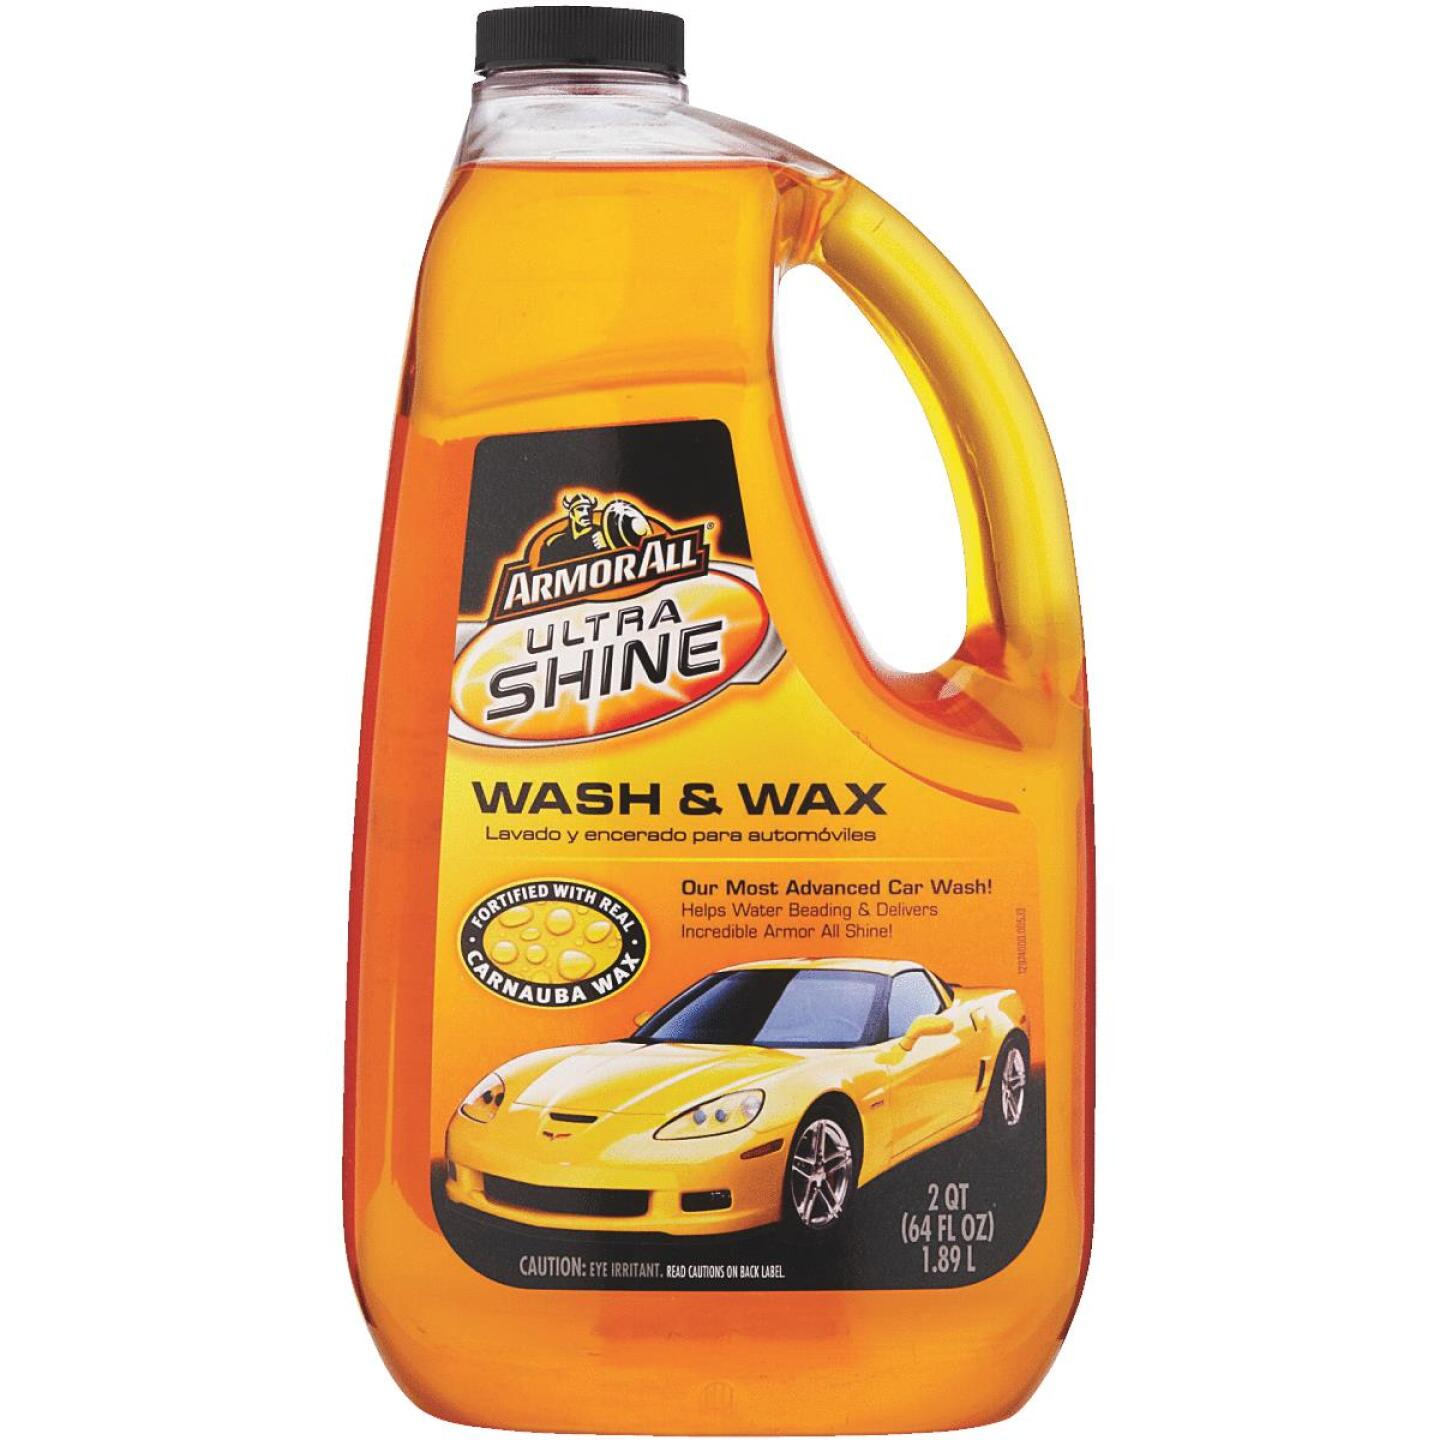 Armor All 64 Oz. Liquid Ultra Shine Car Wash & Wax Image 1